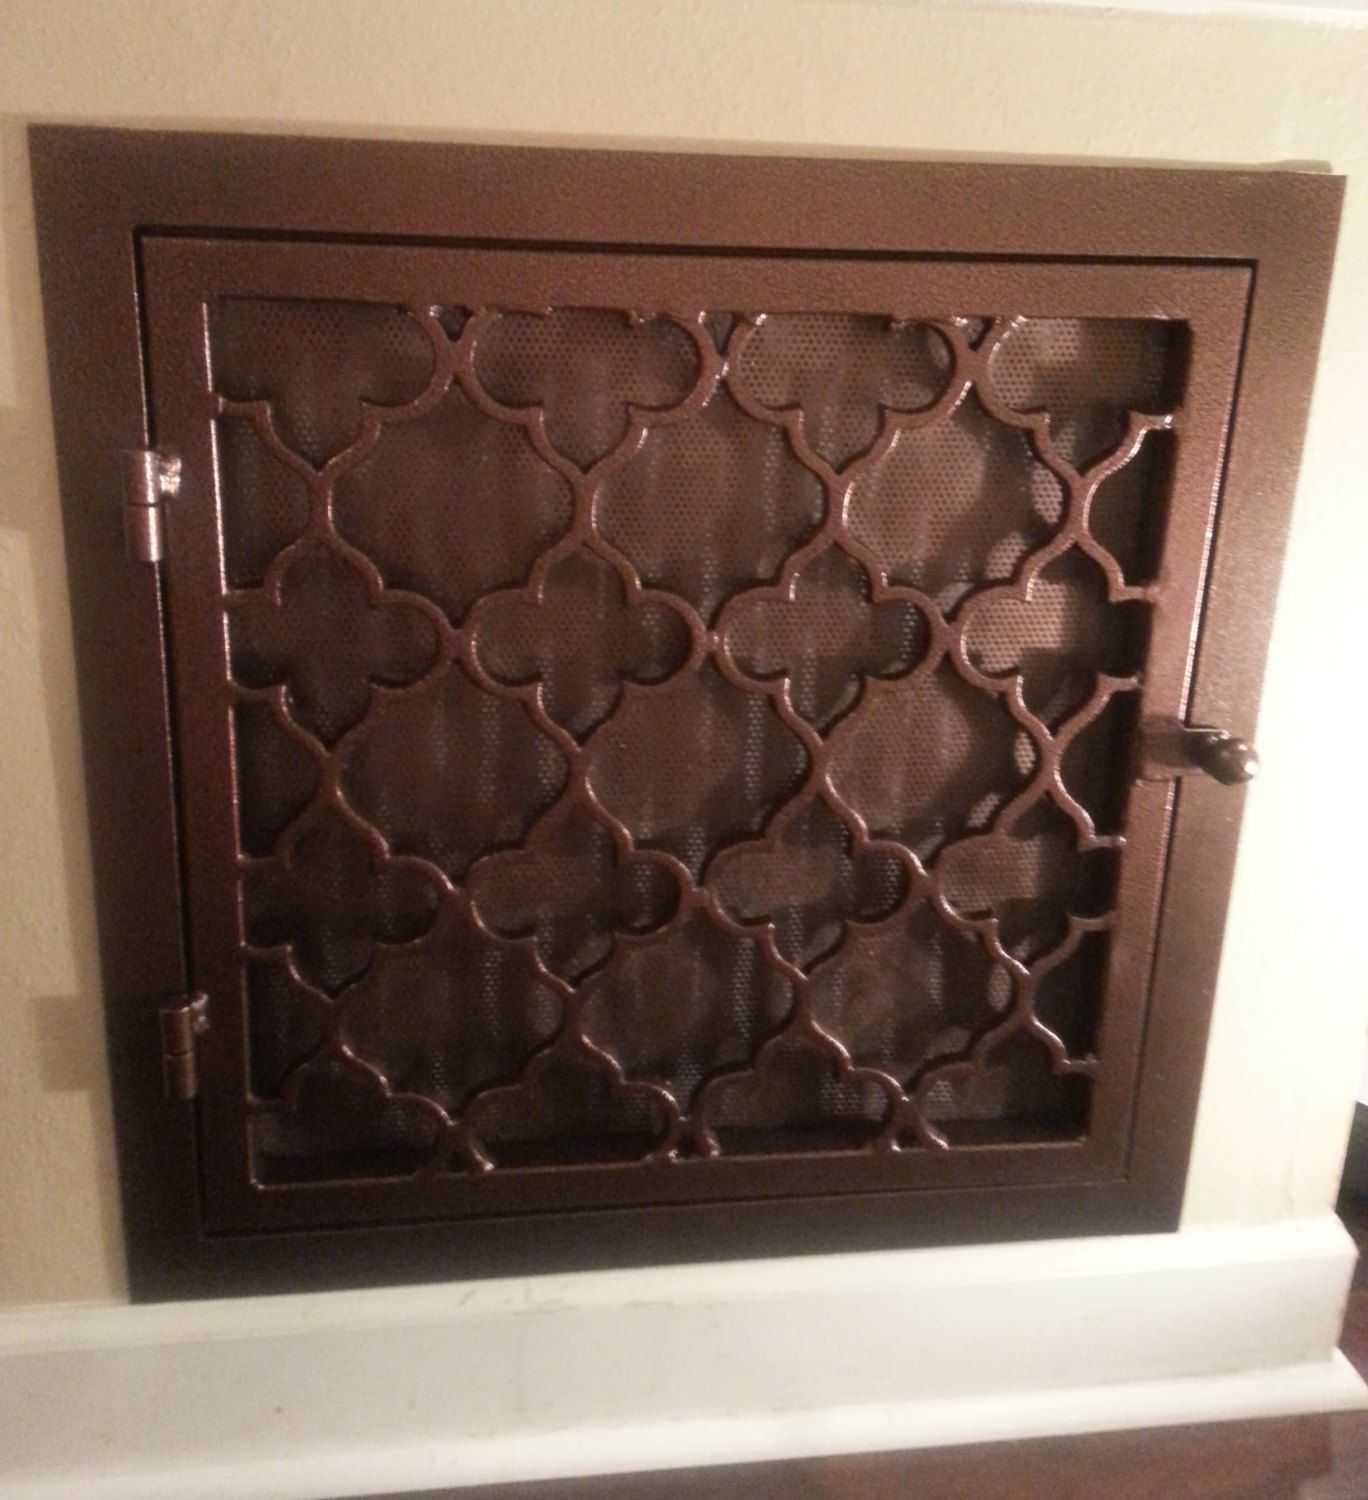 Decorative wrought iron vent cover Trellis style by